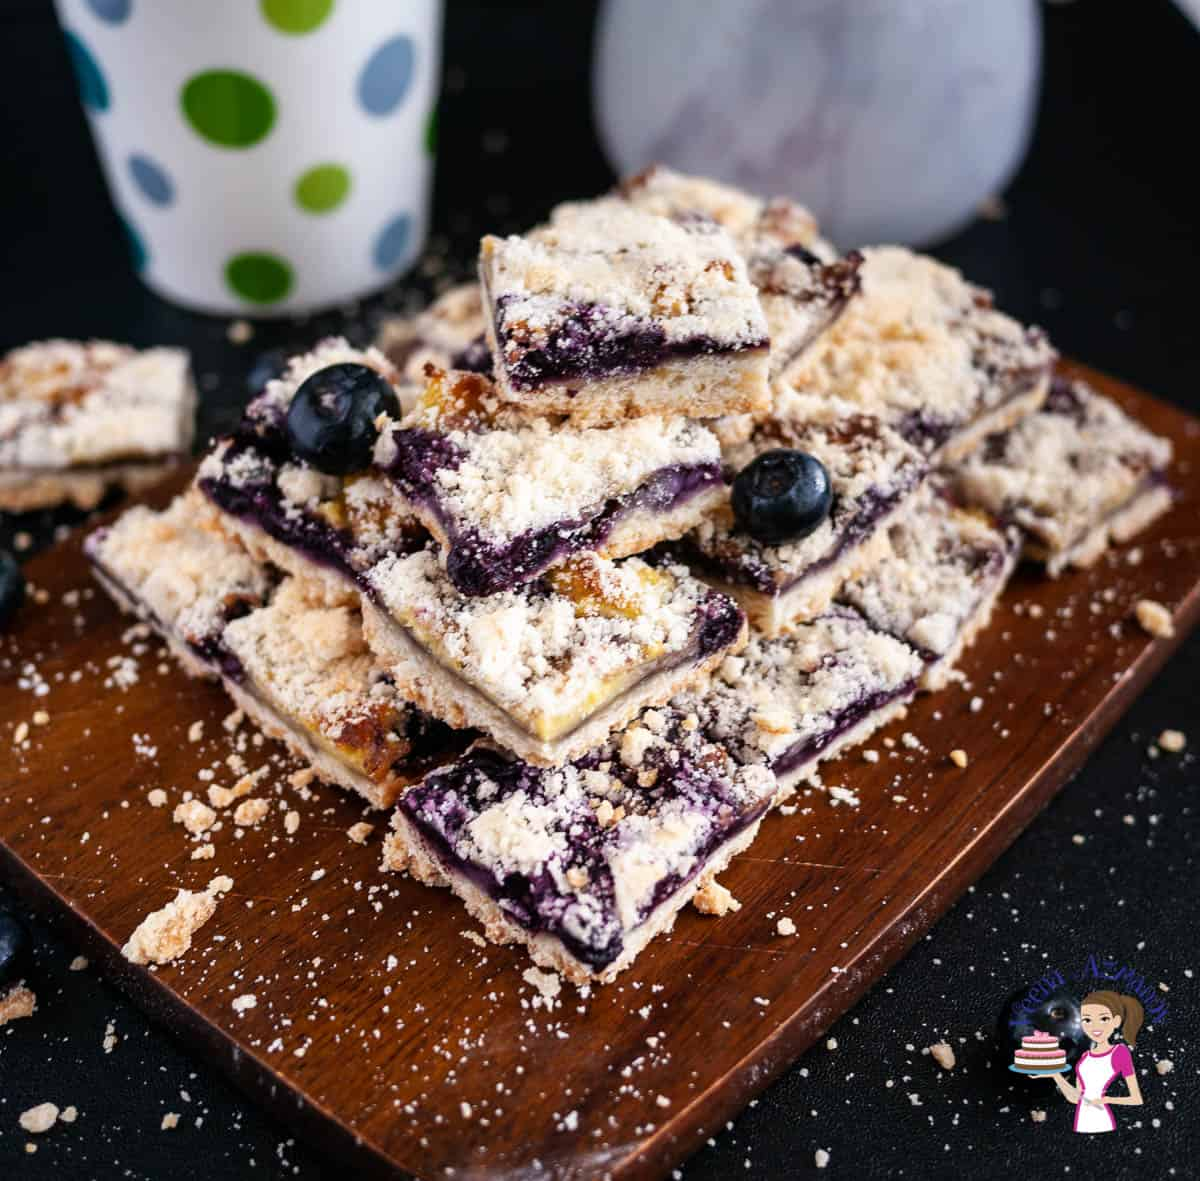 Blueberry bars on a wooden board